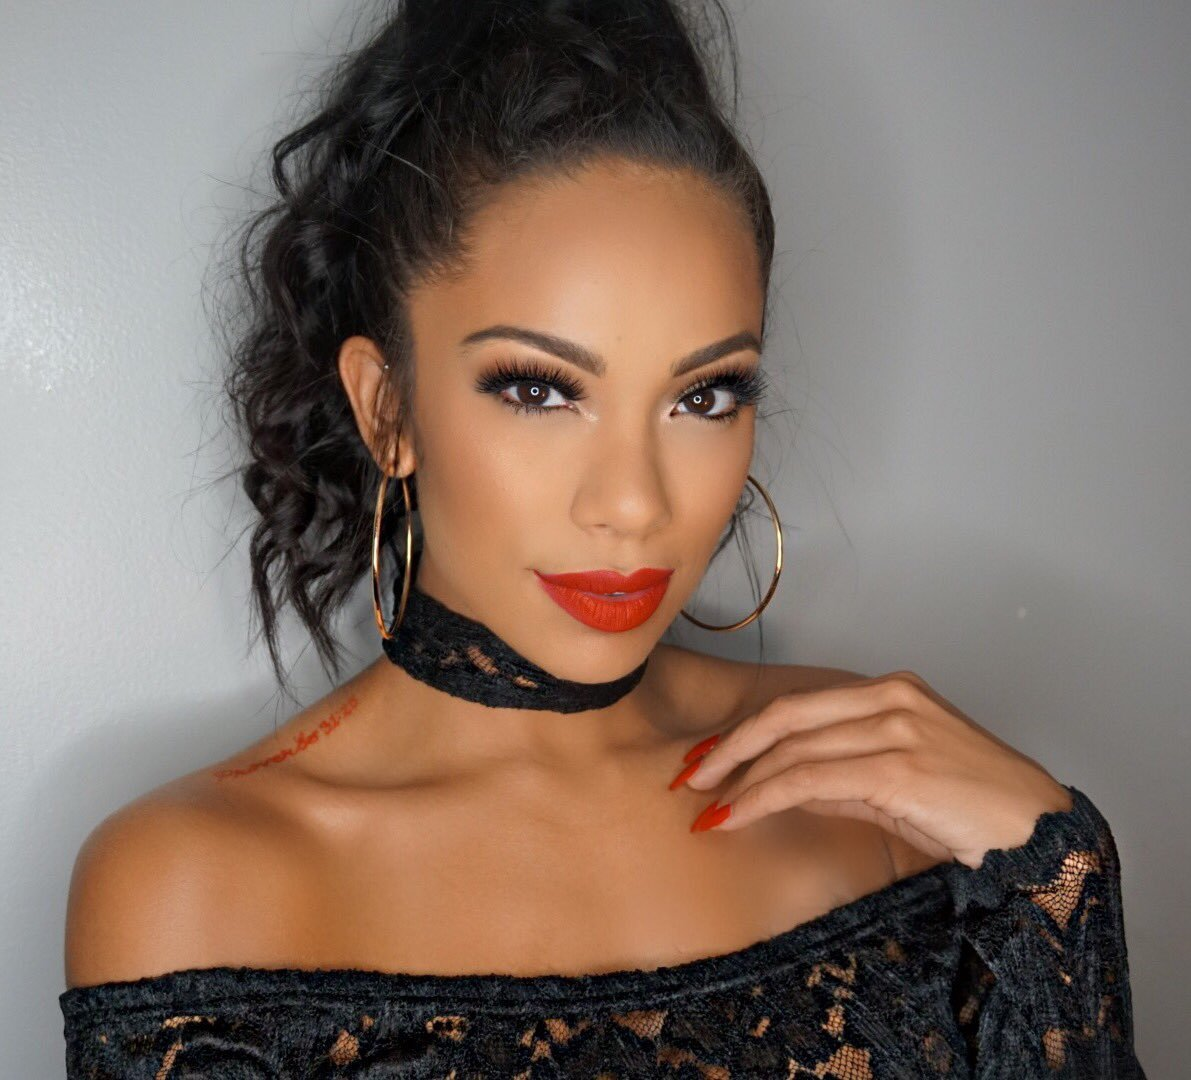 Erica Mena Shows Fans A Bit Too Much In This Photo, But They Don't Mind!